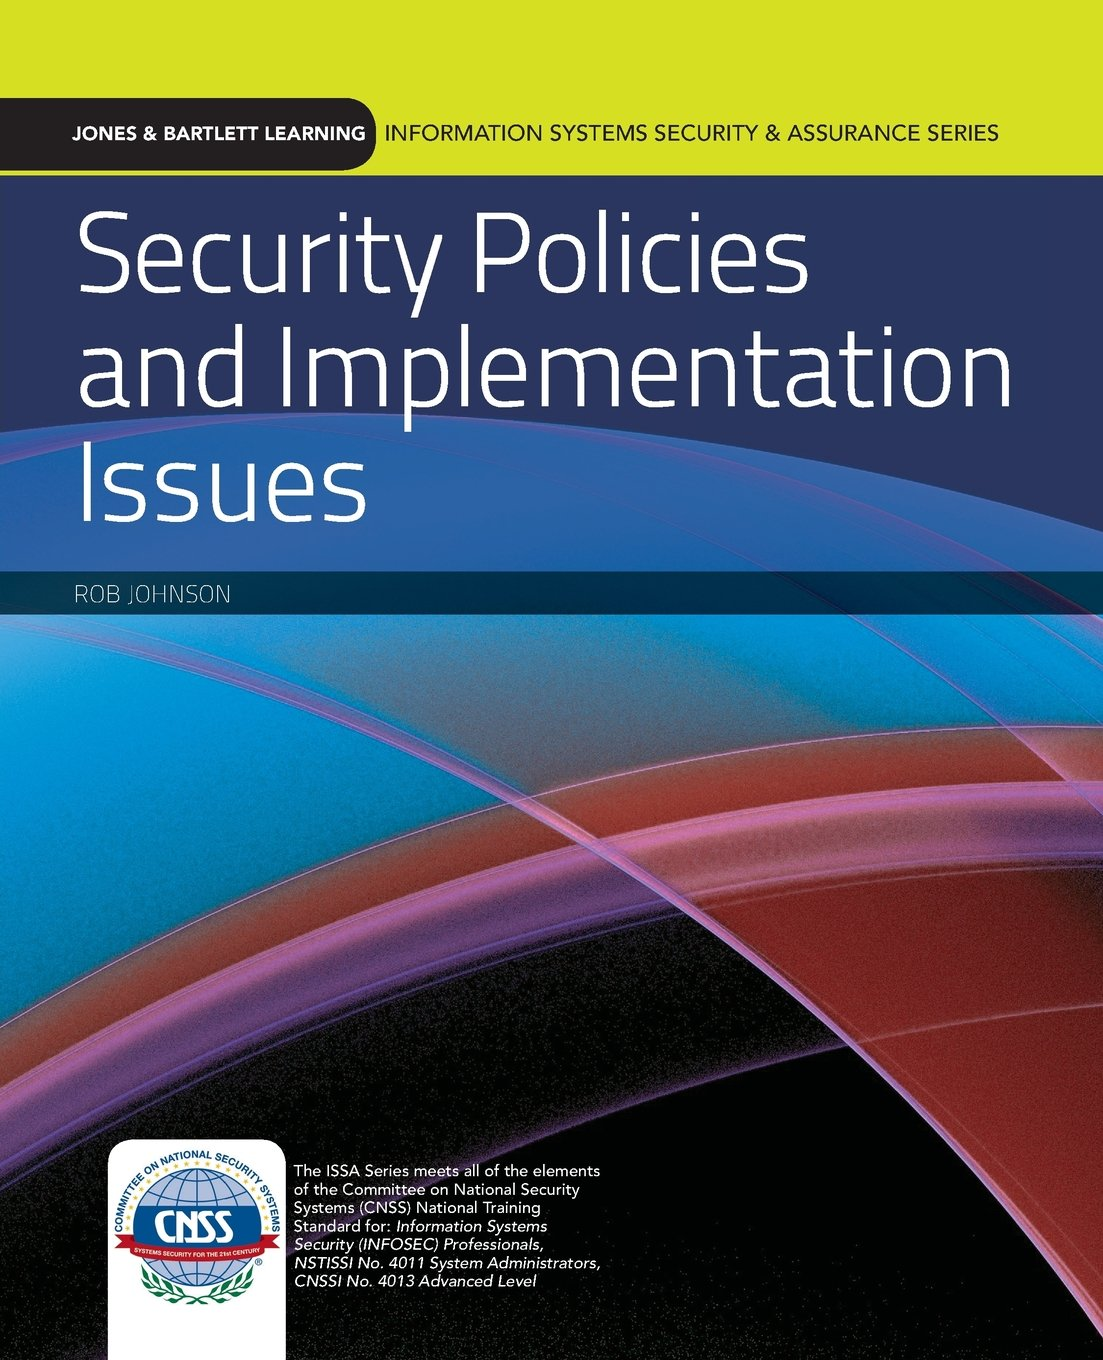 Security Policies And Implementation Issues (Information Systems Security & Assurance) free download